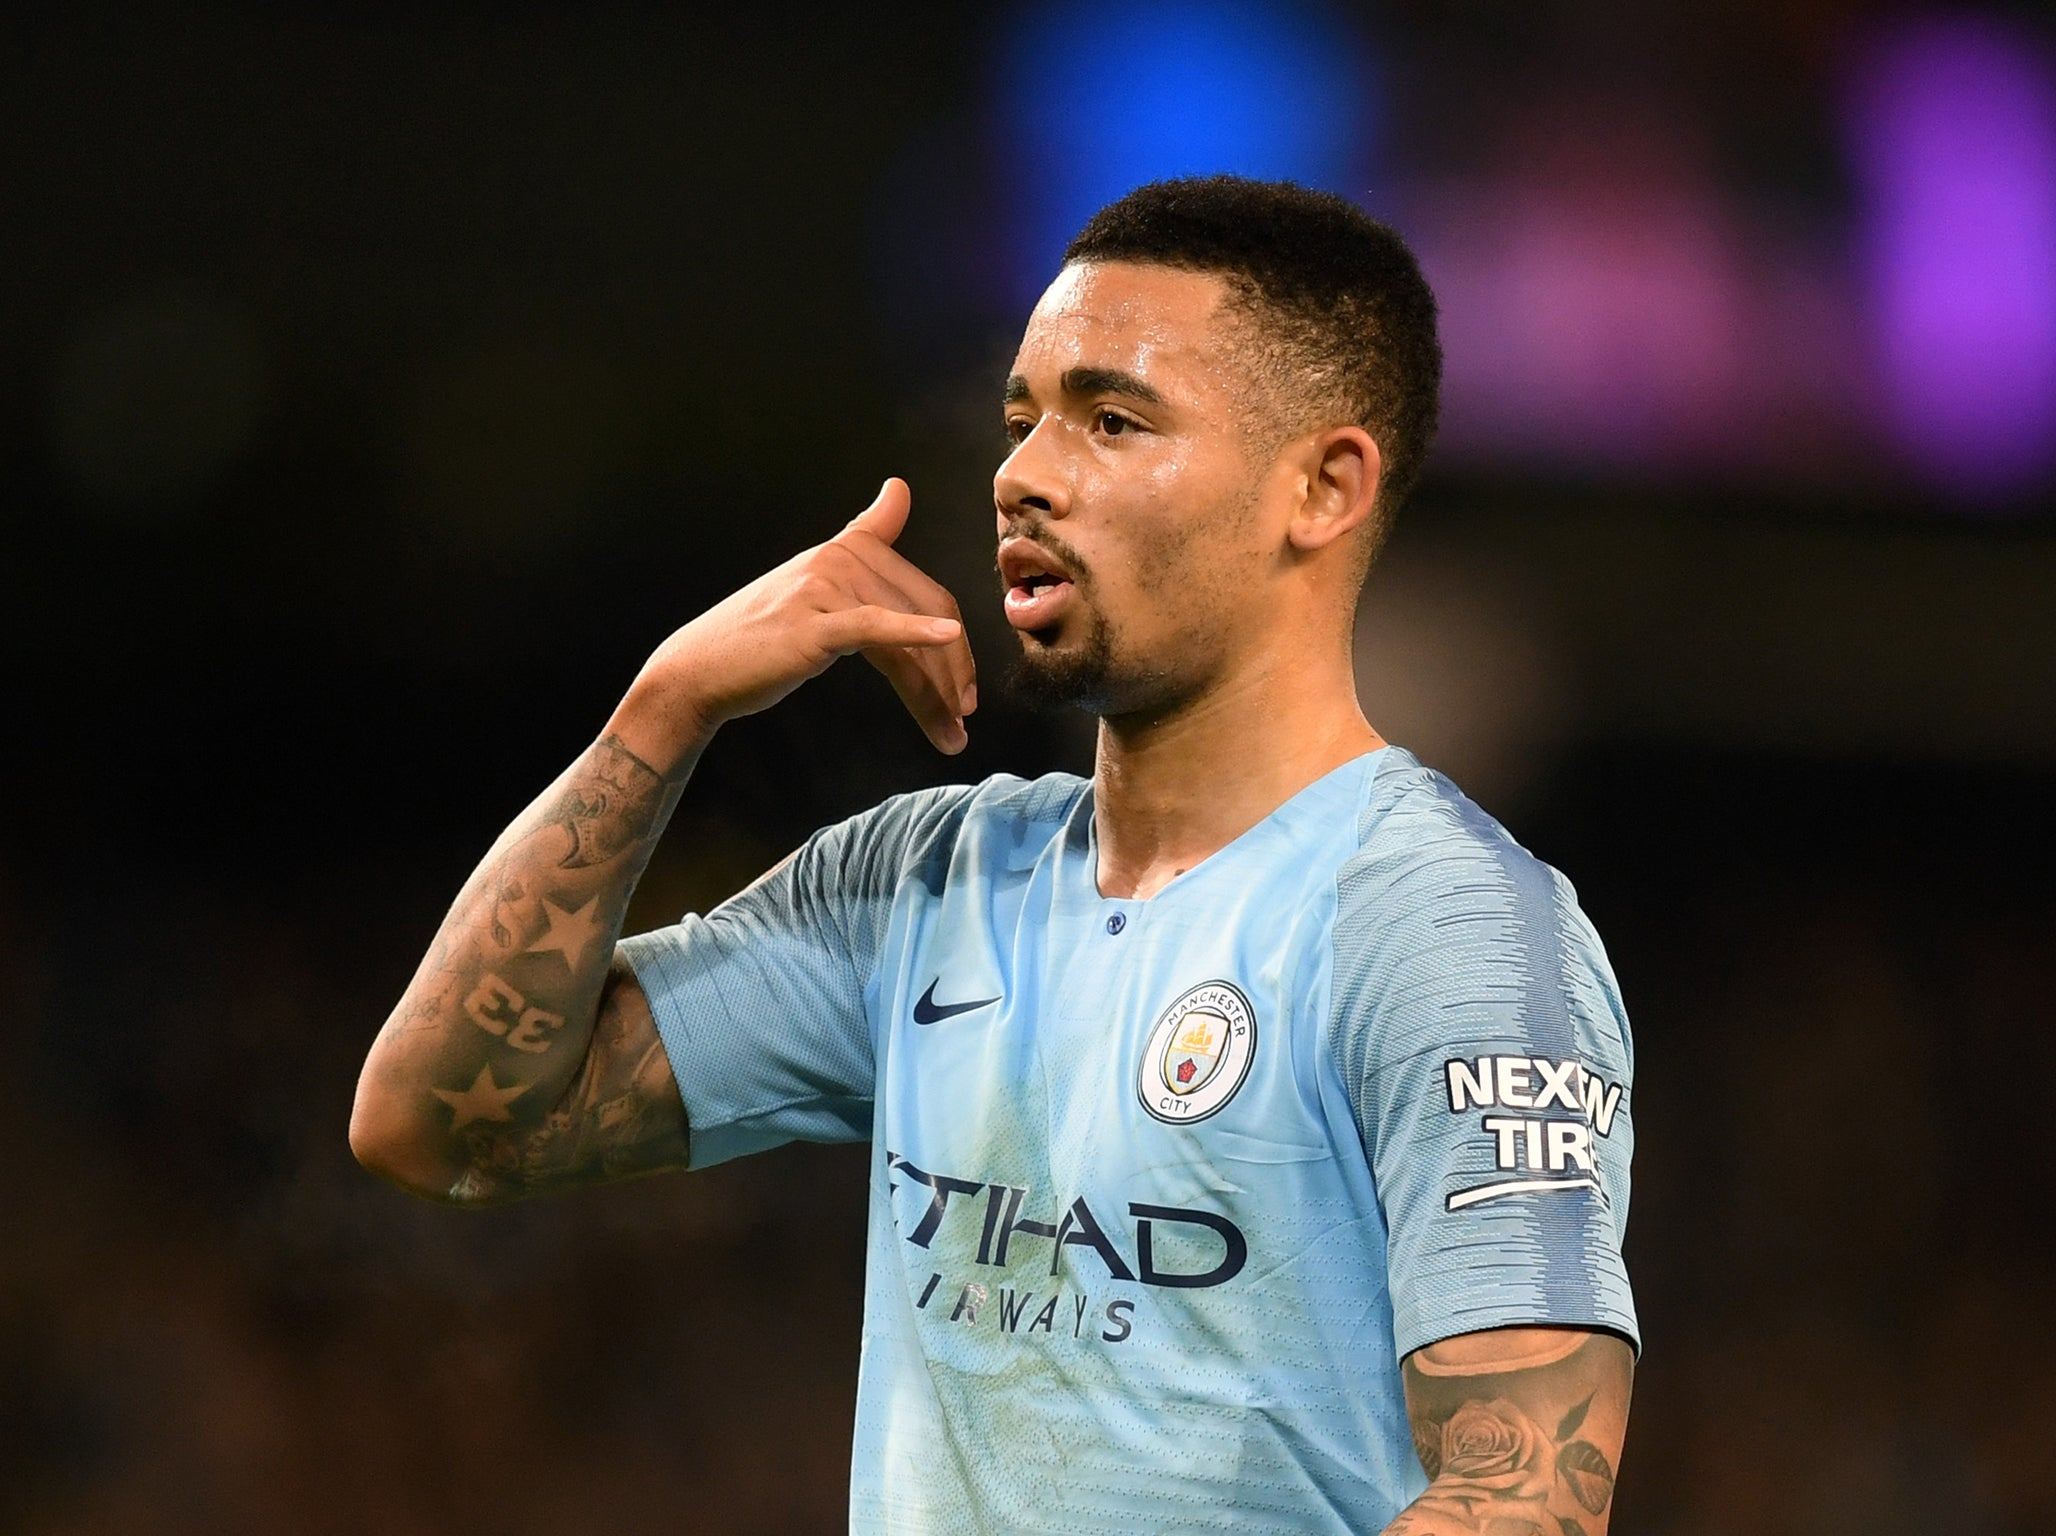 Gabriel Jesus claims he's 'on fire' after continuing hot streak to inspire Manchester City in rout over Burnley